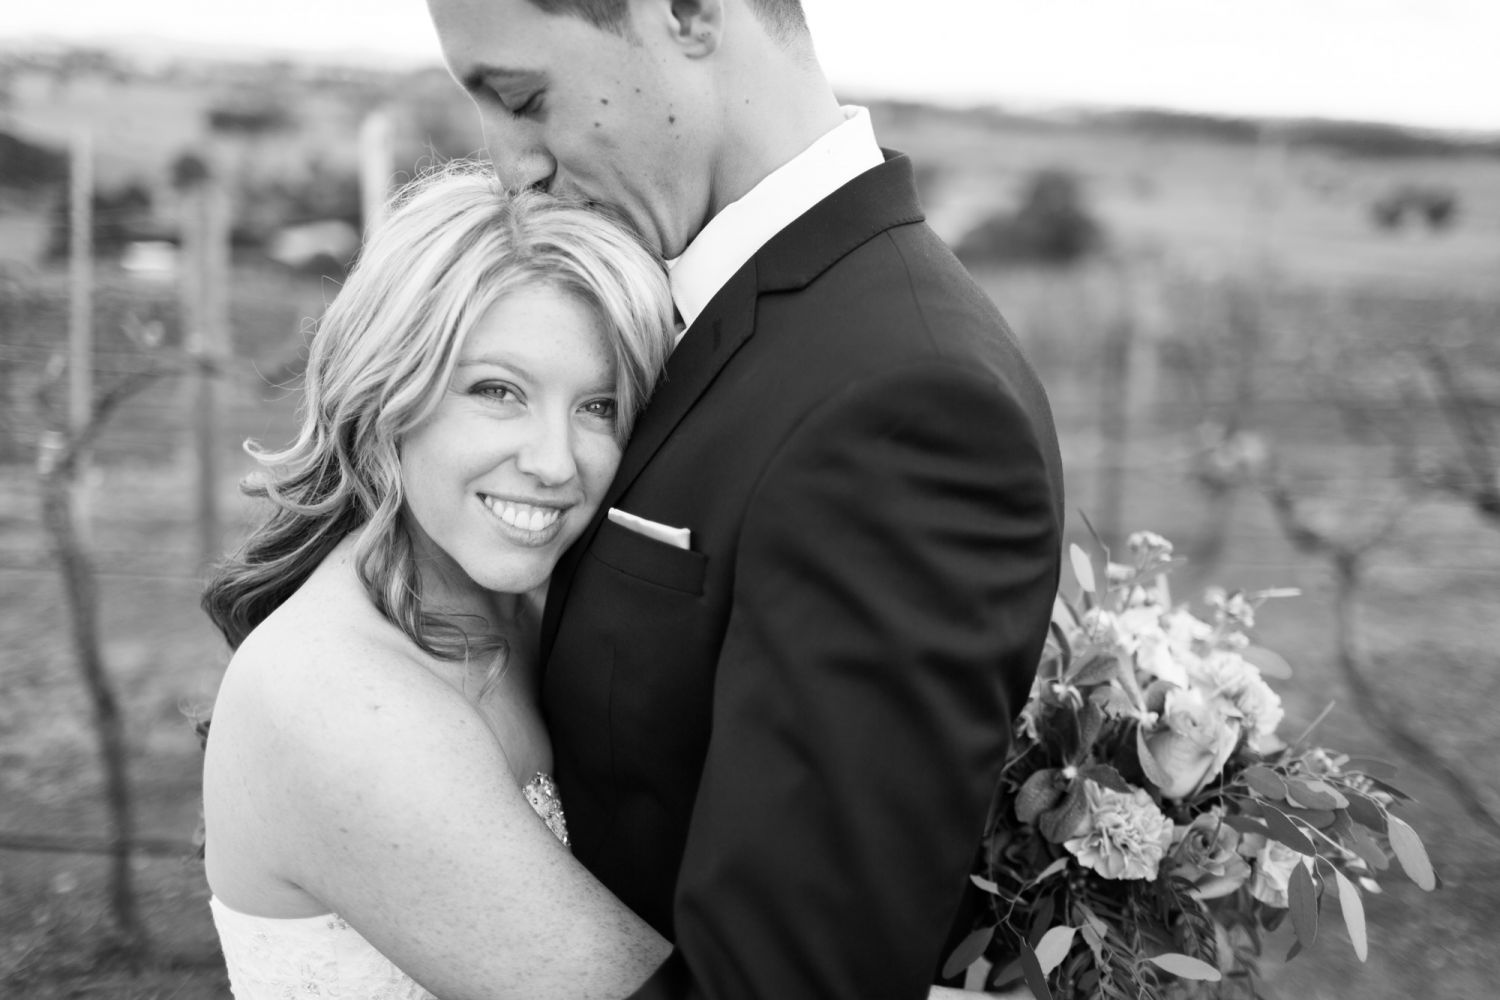 12_wedding-photographer-captures-intimate-moments-in-hunter-valley